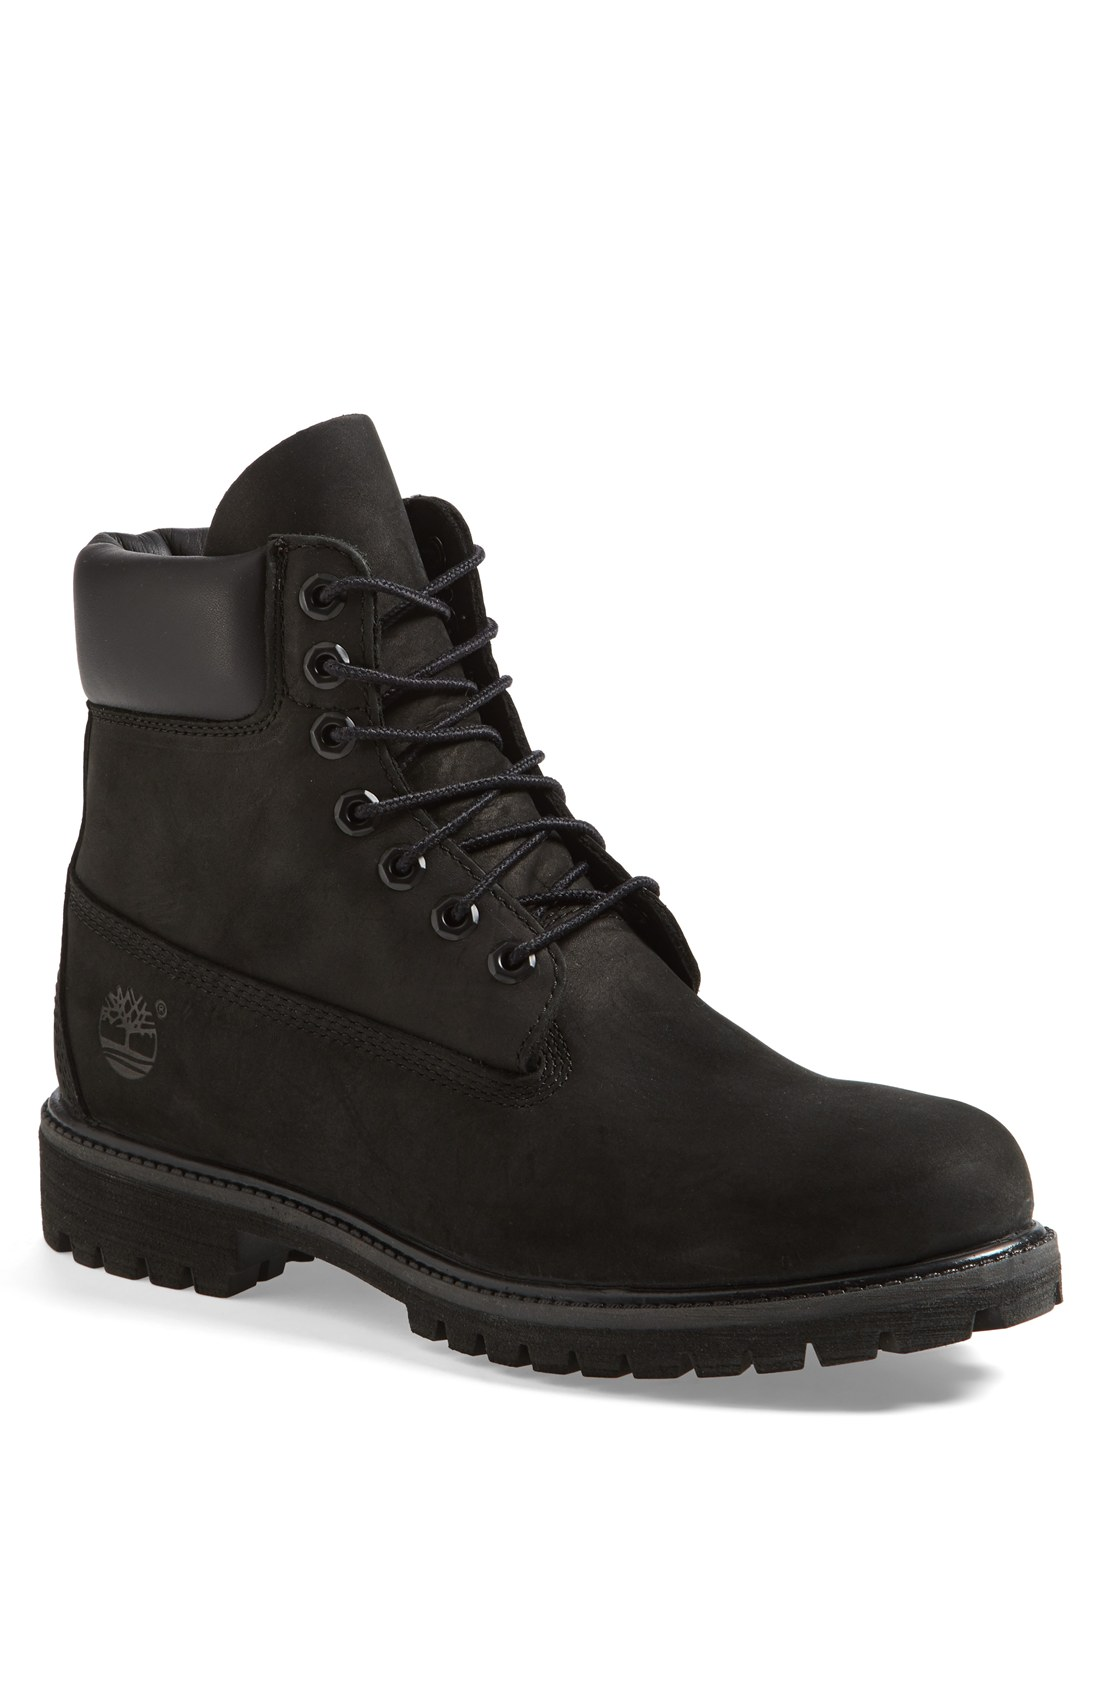 Mens Snow Boots Sale iTUzqnM3